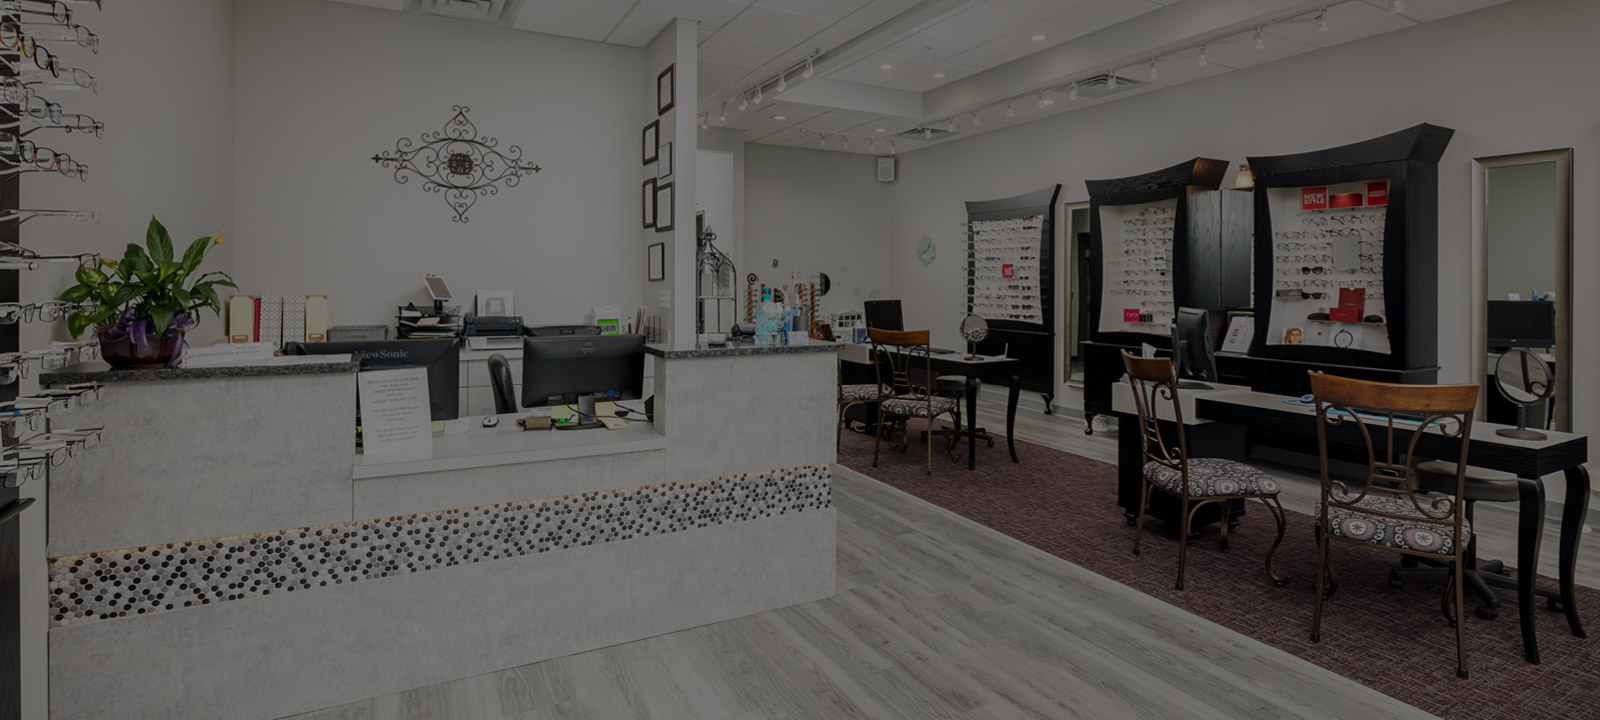 Canterbury Vision Care front desk